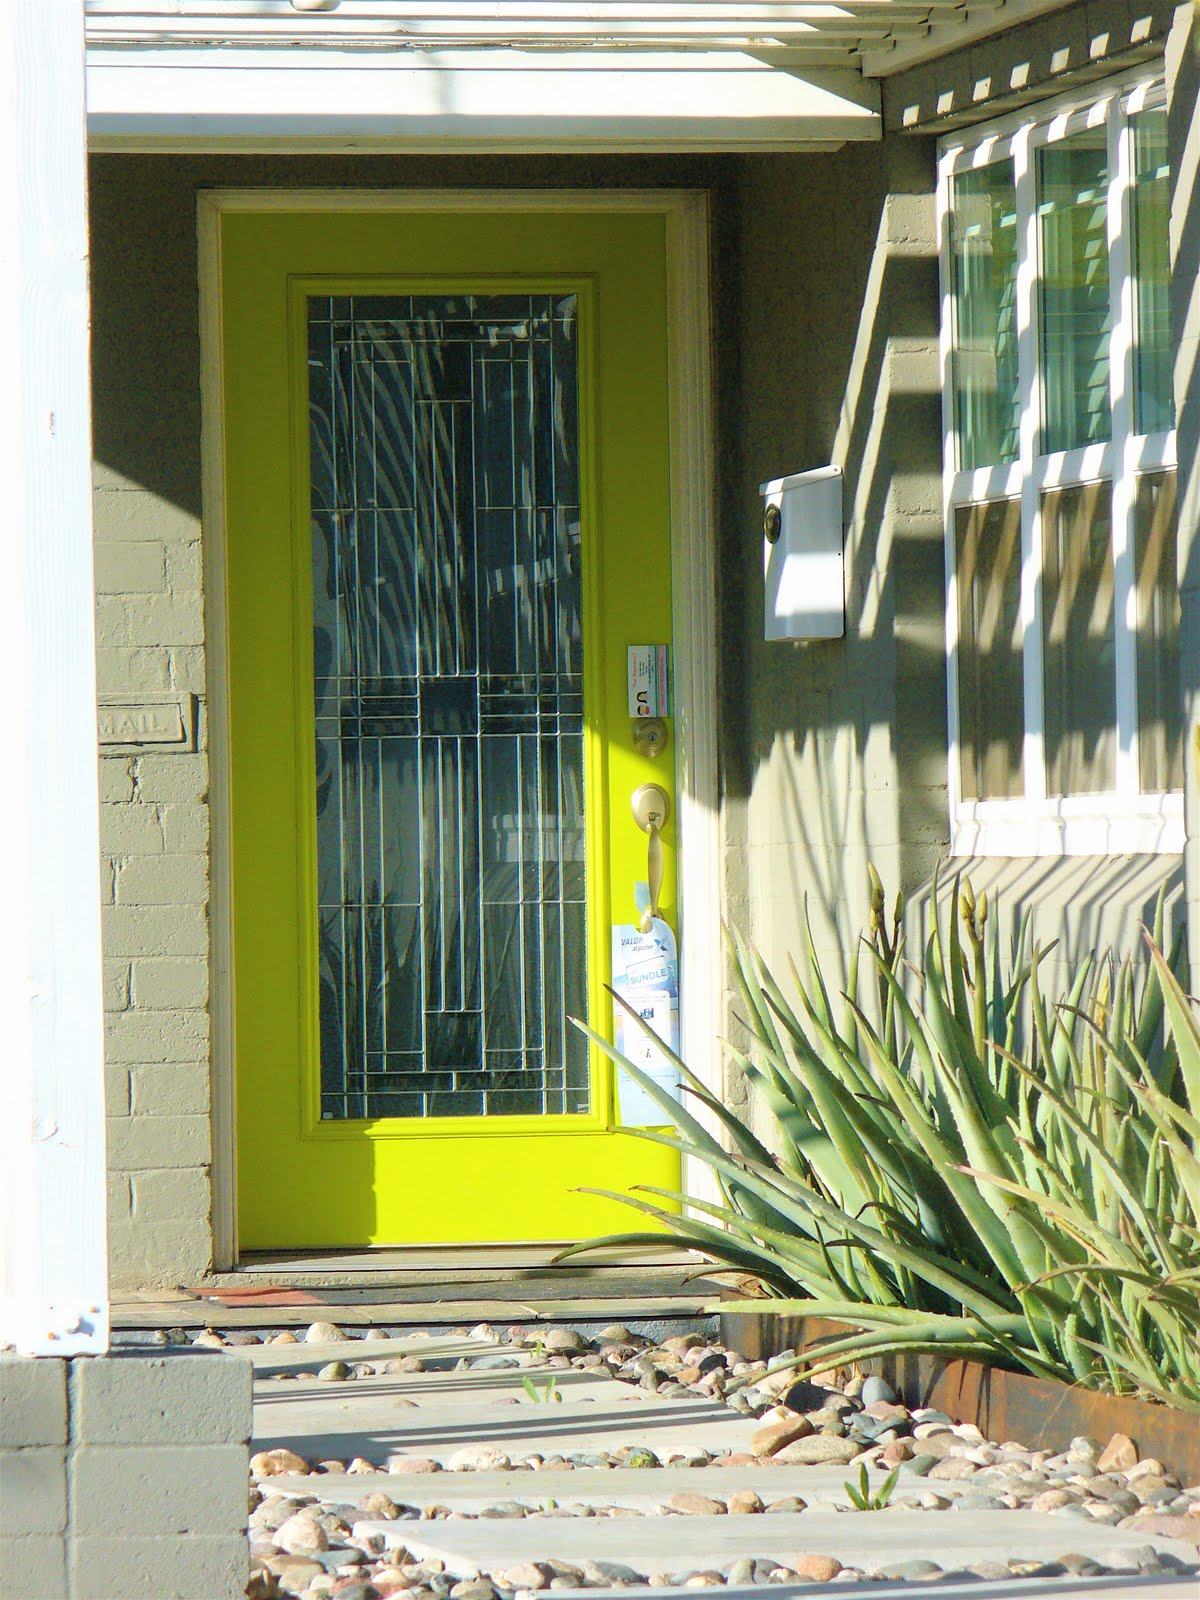 Bandanamom: Exterior Colors And Design - Phoenix Edition (and some MCM)